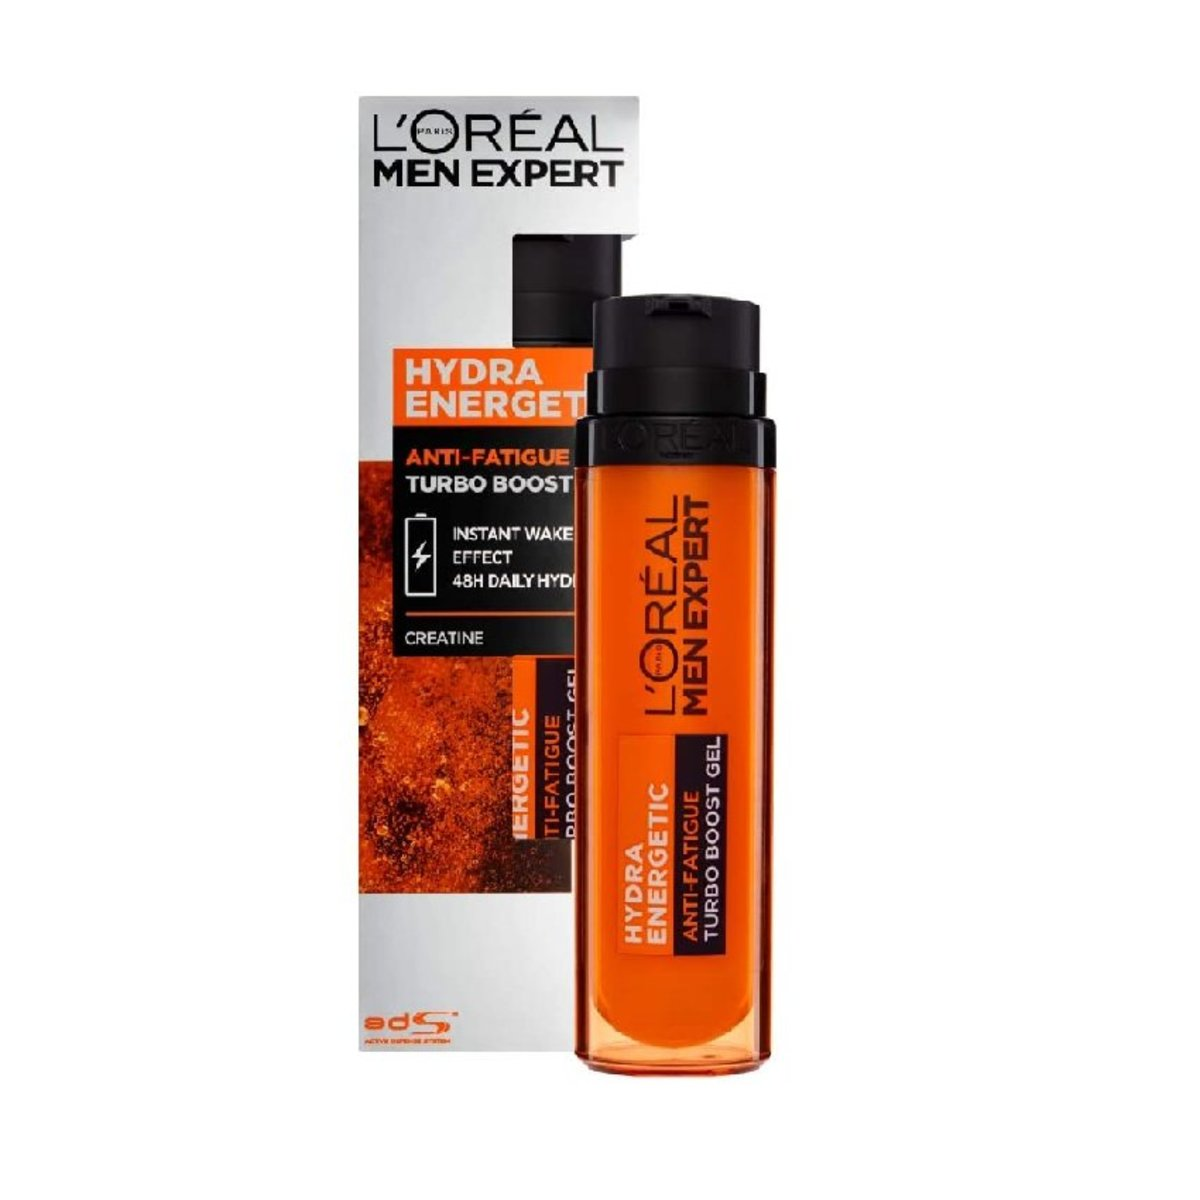 L'Oreal Paris - Hydra Energetic Anti-fatigue Turbo Boost Gel 50ml  [Parallel Import]